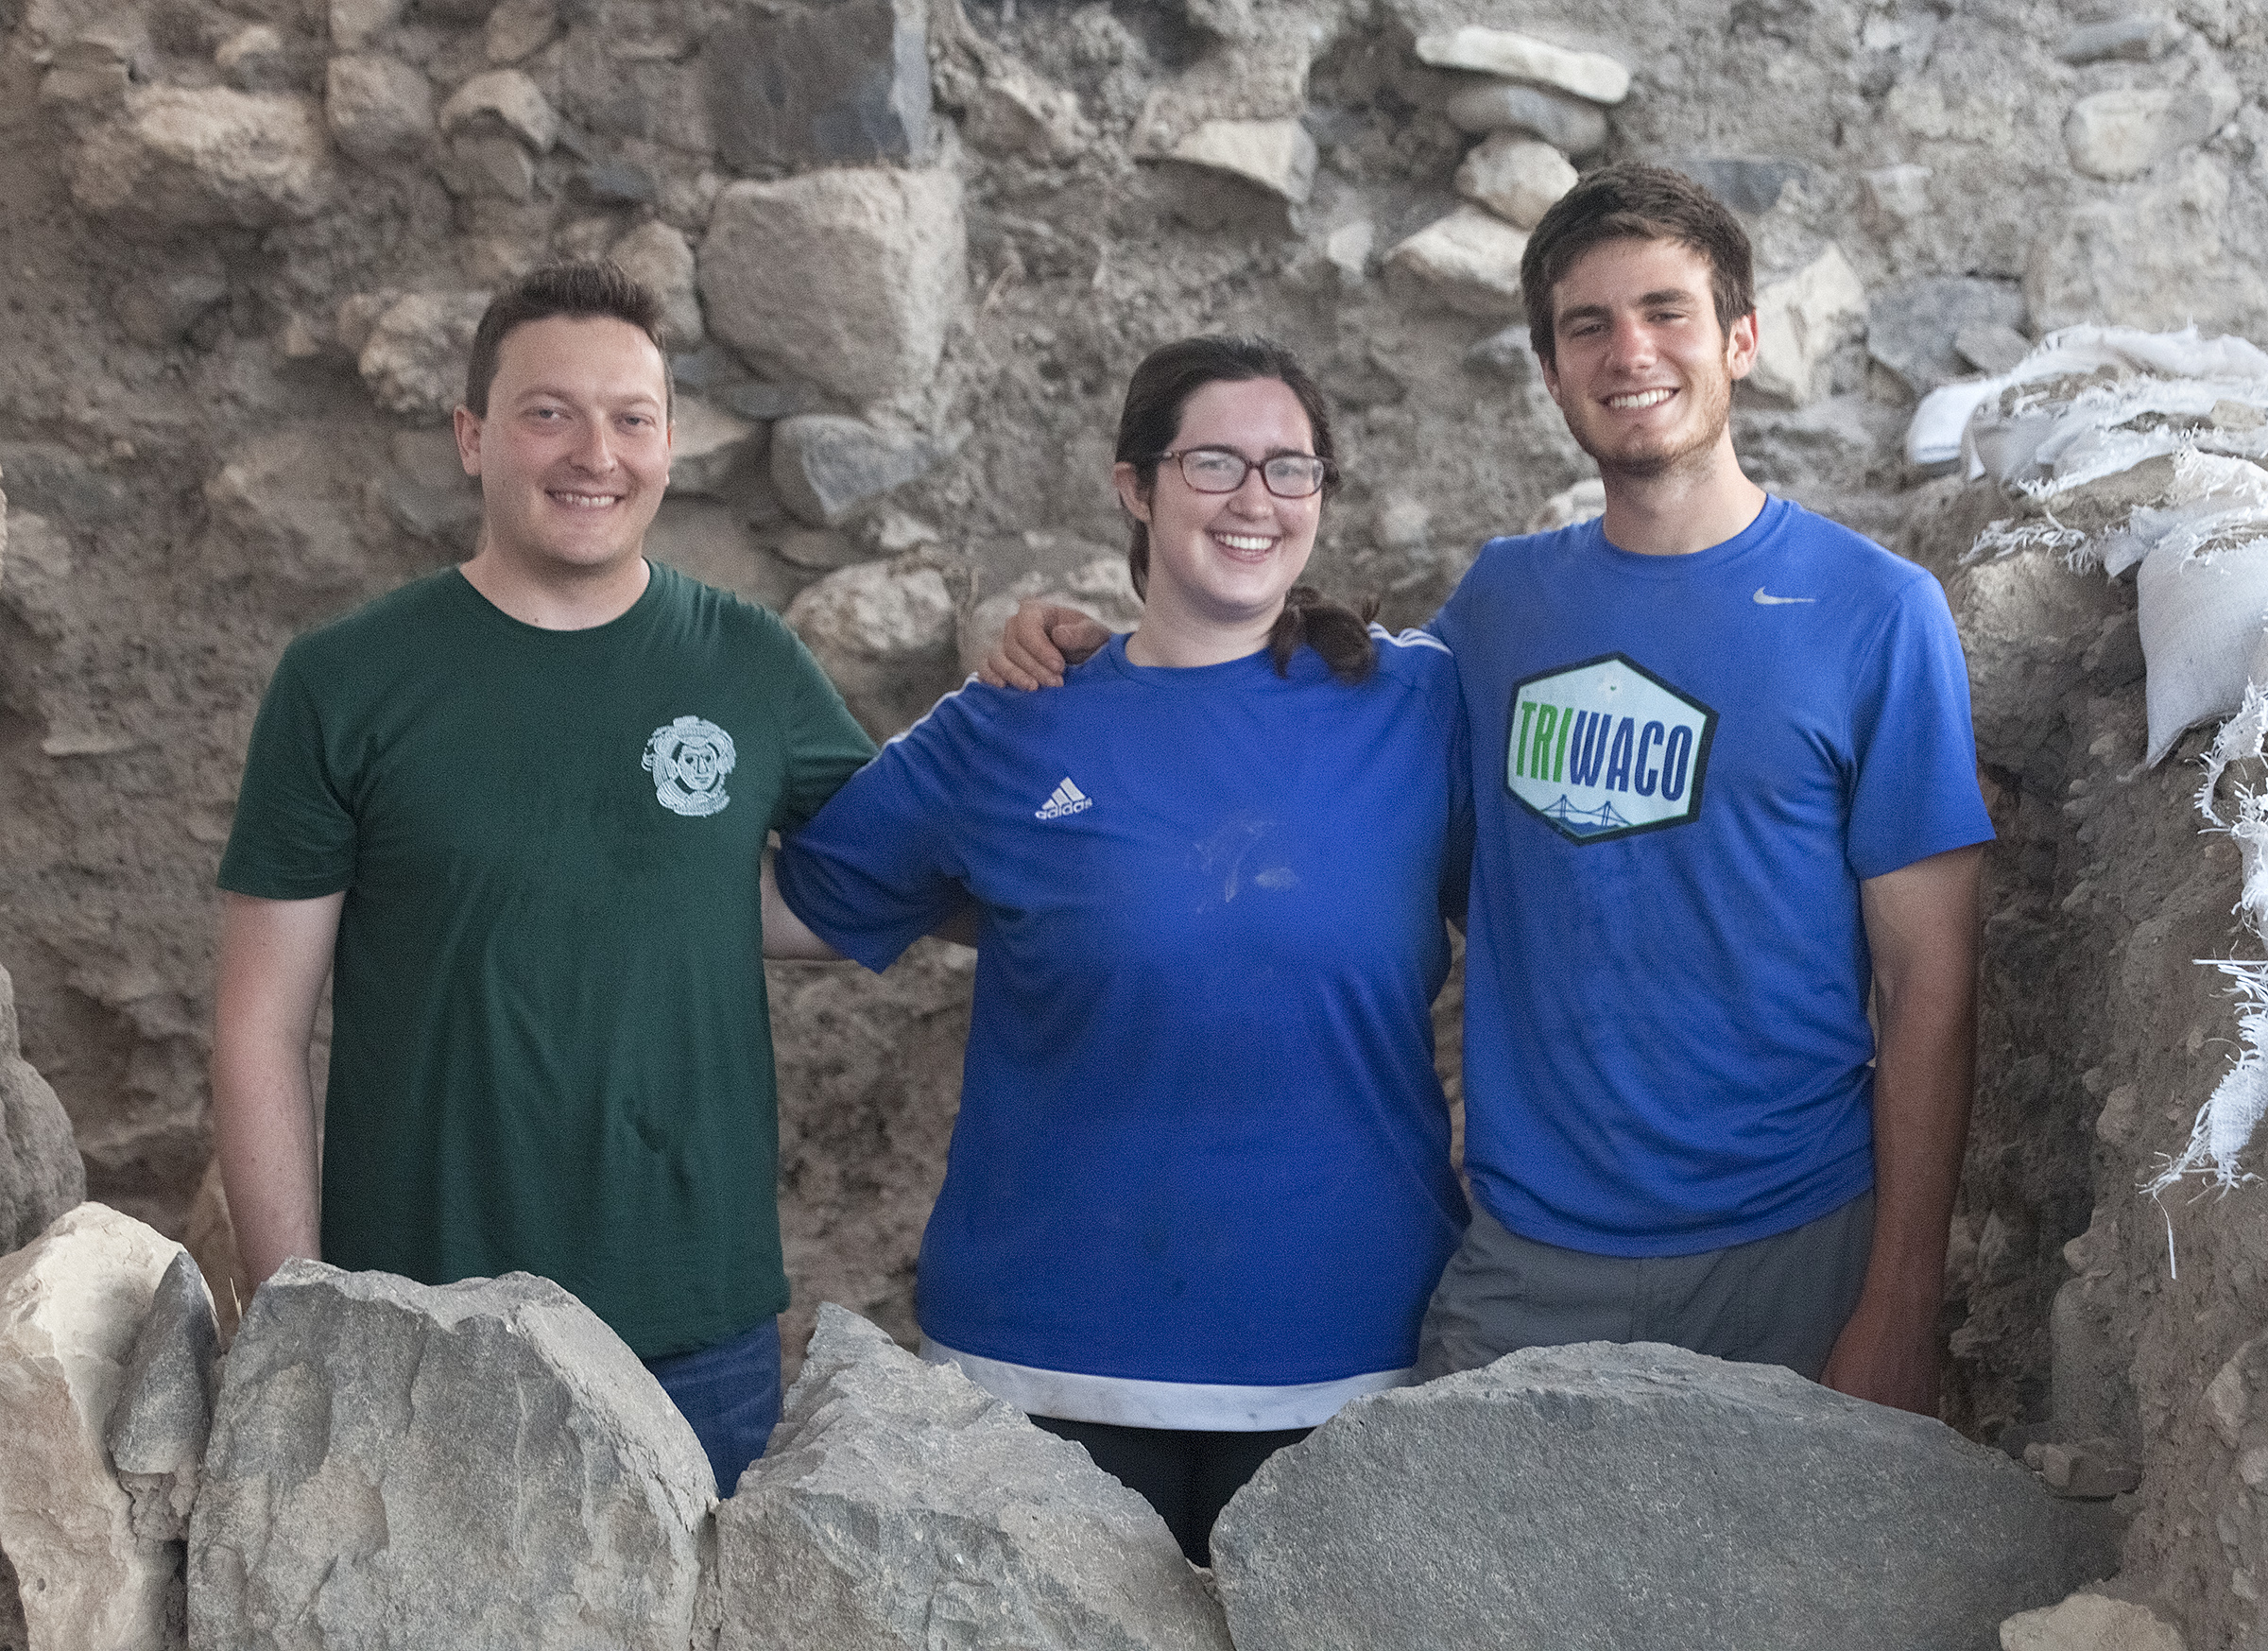 Dr. Nathan Elkins with Art History students in Israel on Excavation - Baylor in the Galilee